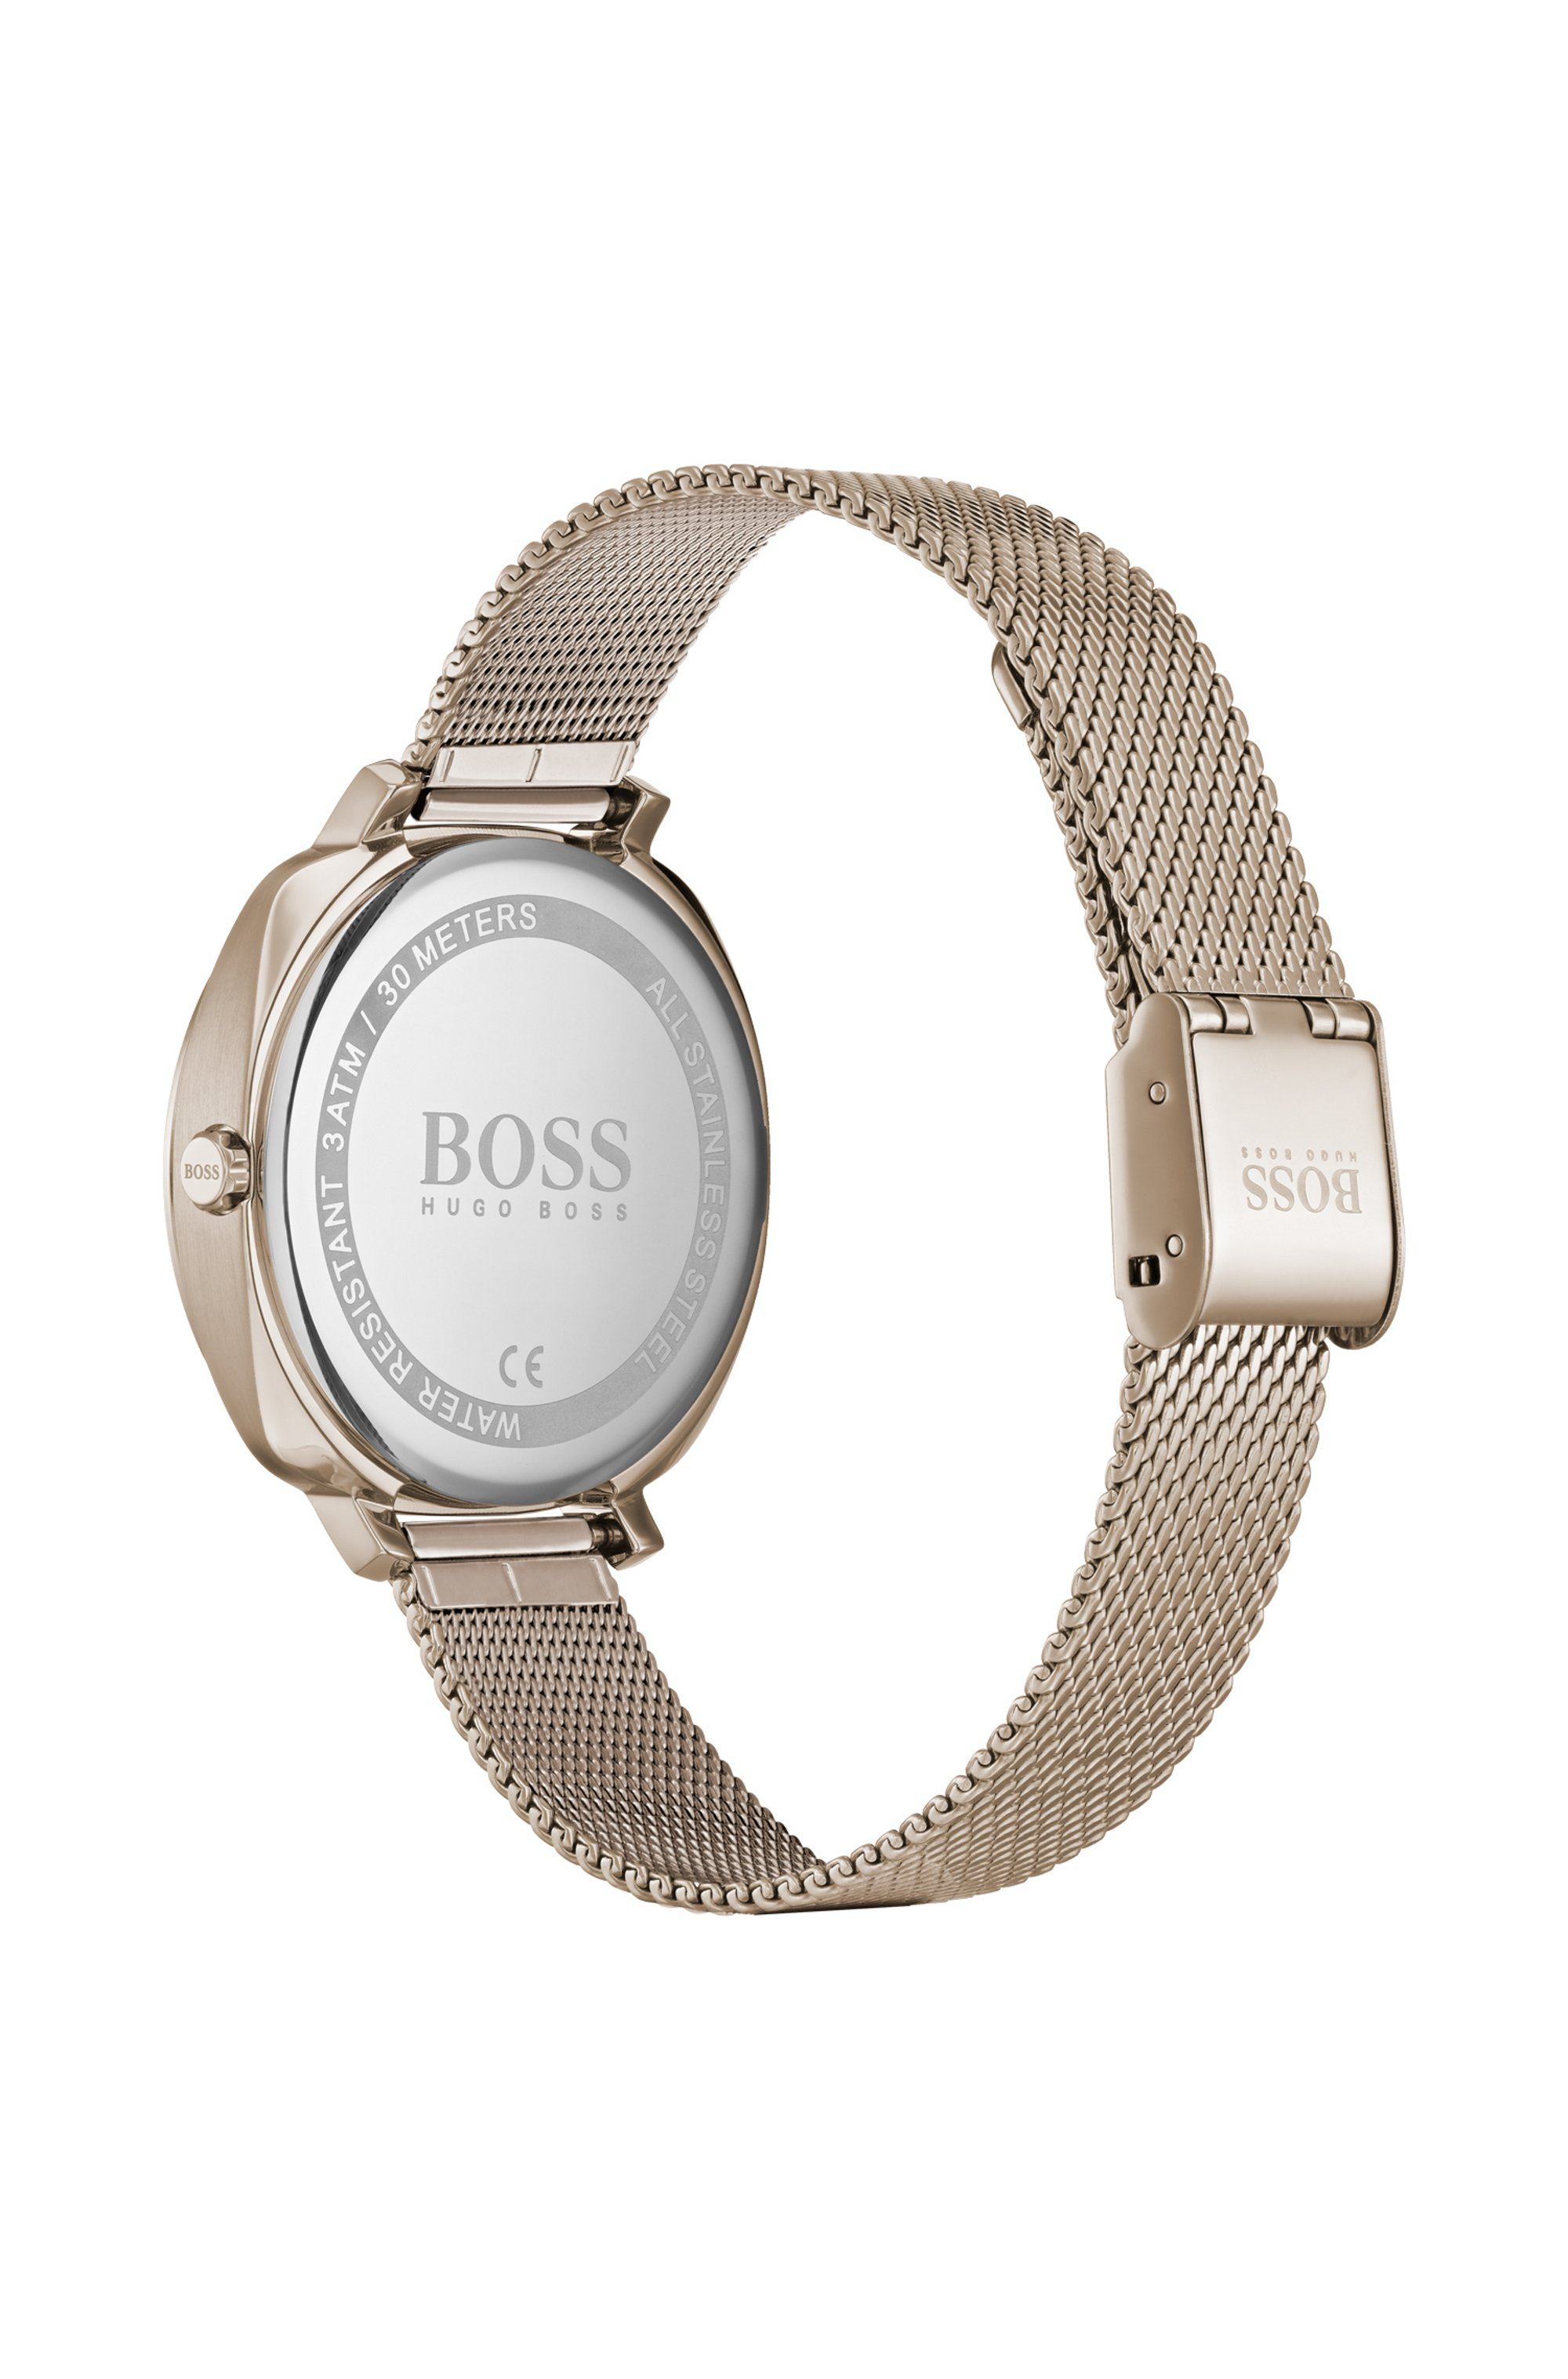 Carnation-gold-plated crystal-trimmed watch with mesh bracelet